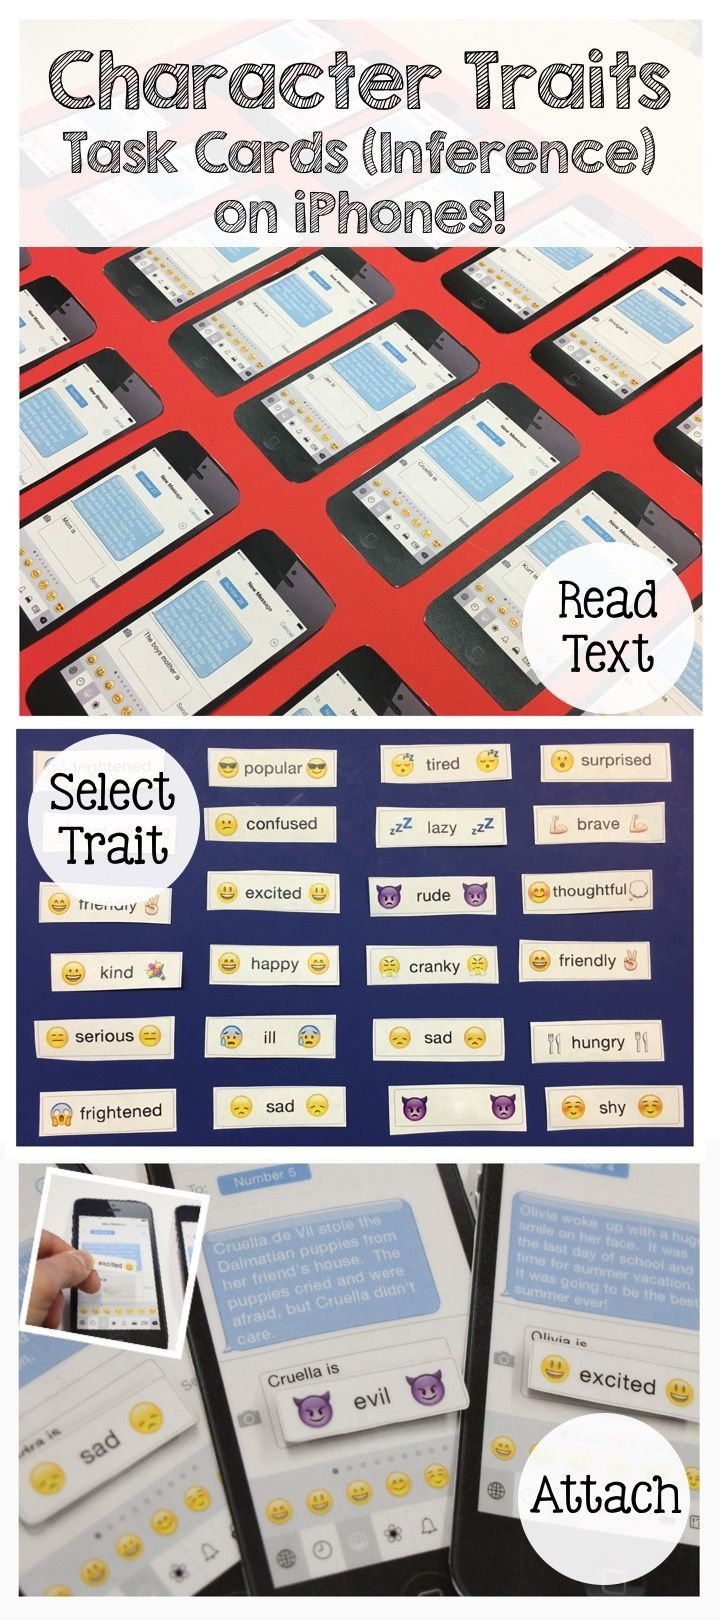 These character trait task cards are designed on realistic looking iPhones.! Students read a text message about a person and then attach the emoji character trait that matches the person's description.  Great inferencing practice and super fun for the kid